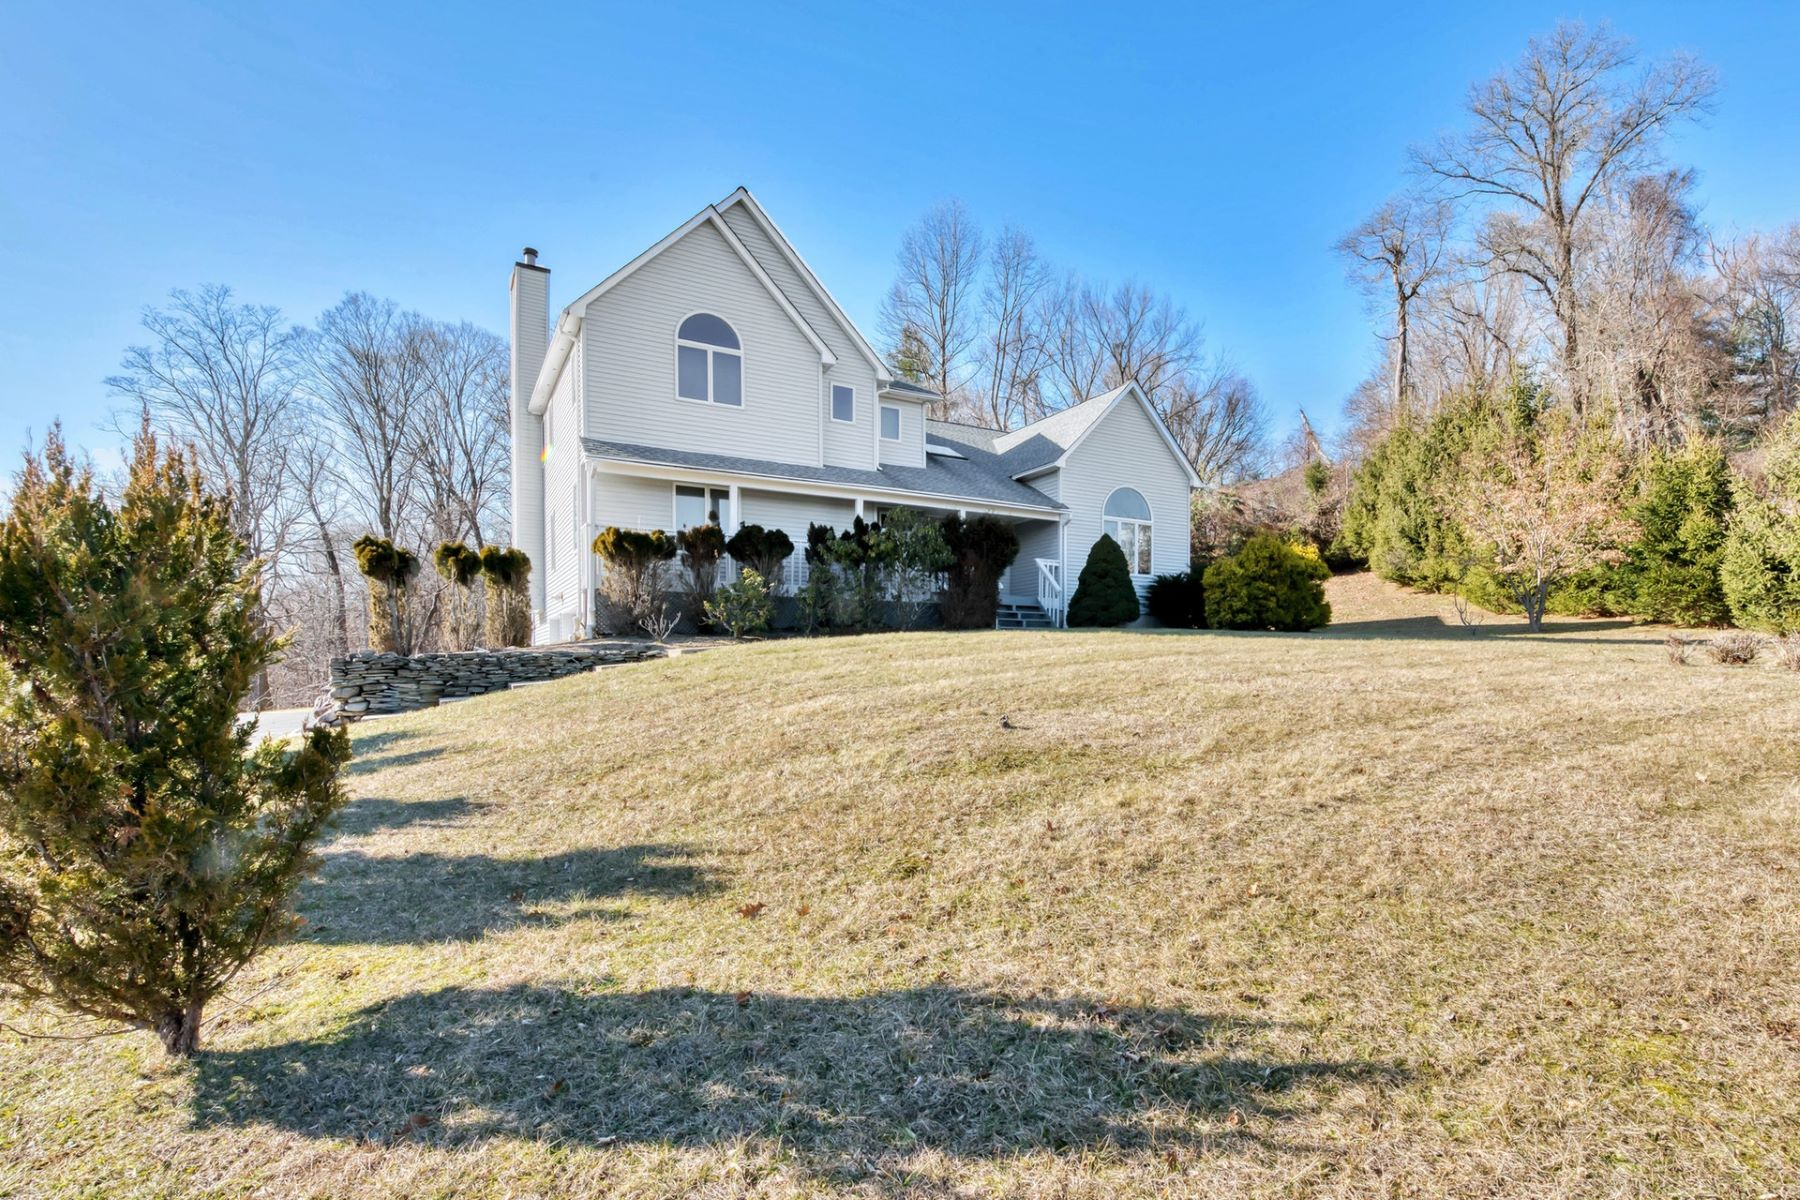 Single Family Homes for Sale at Contemporary/Colonial on 1.86 Acres 5 Janna Court Chestnut Ridge, New York 10977 United States